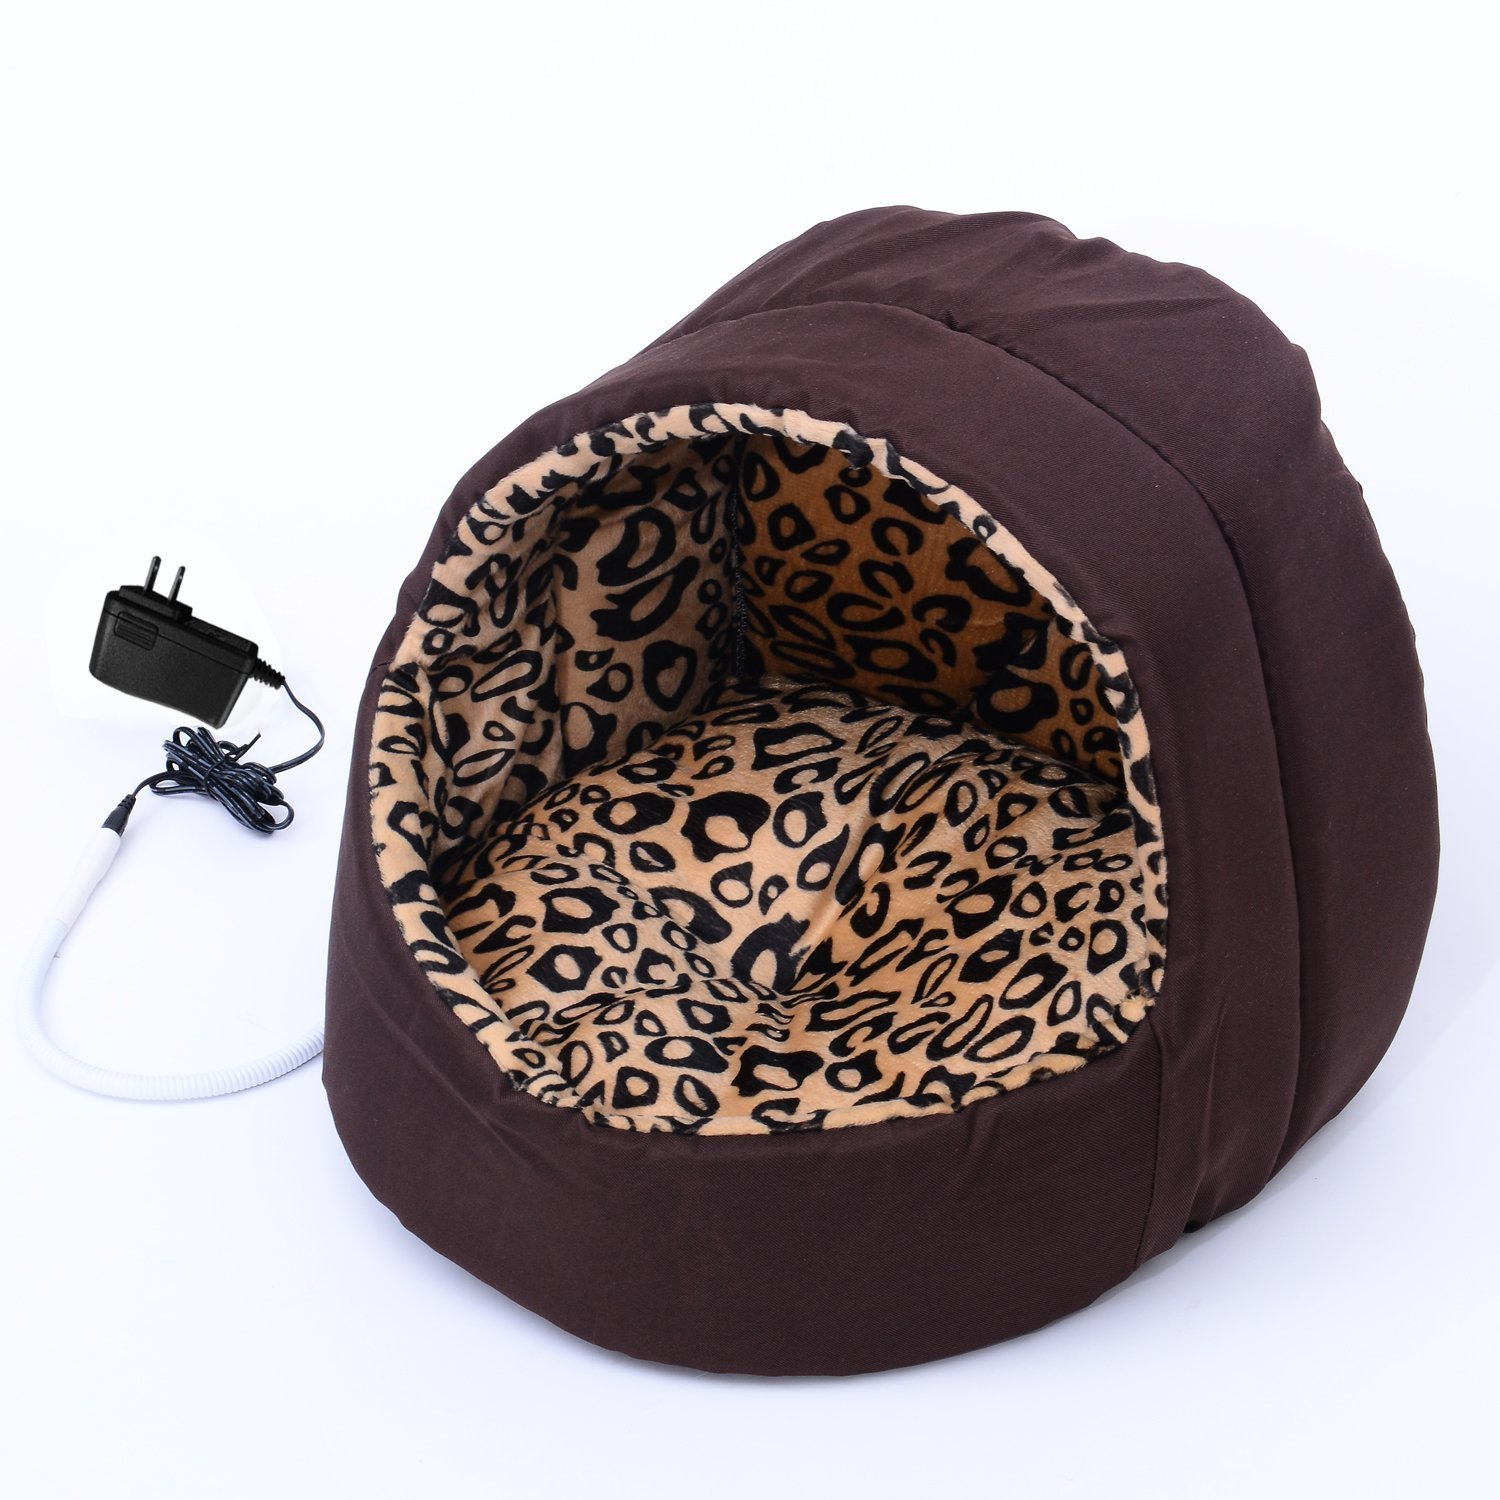 image petco and comfortable beds of walmart hot dog heated bed decor pleasant home